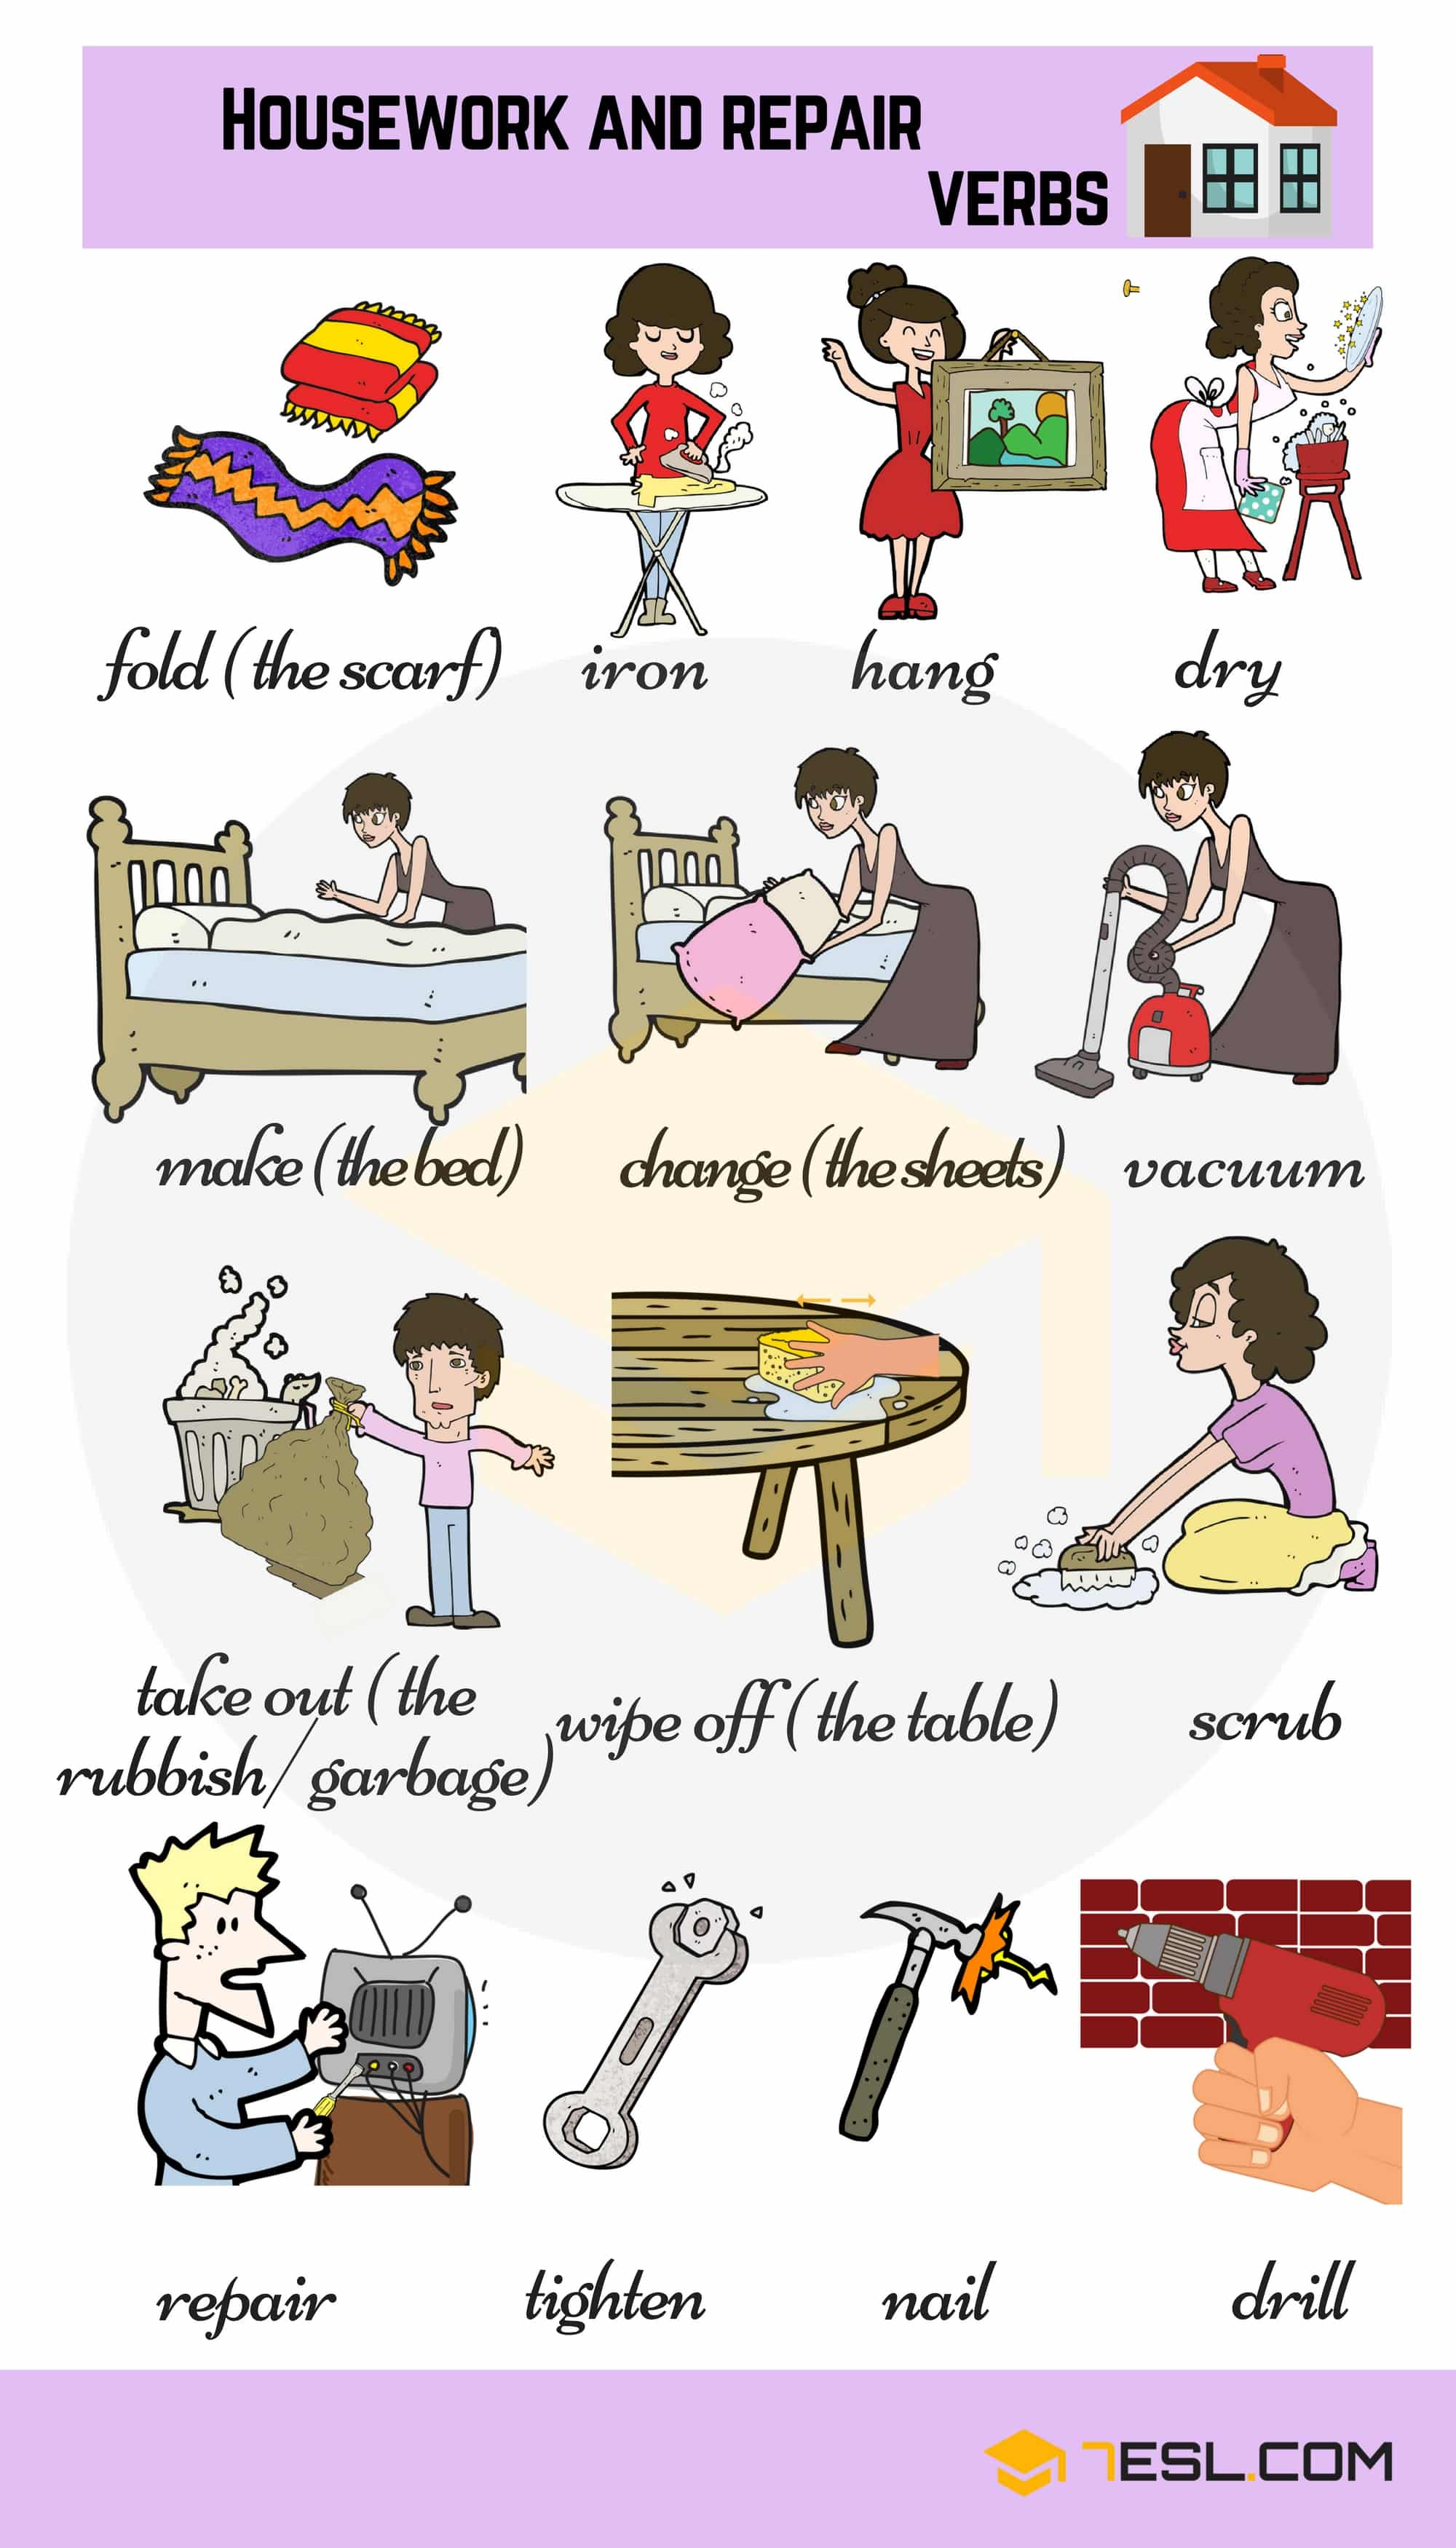 Housework and Repair Verbs | Household Chores Vocabulary